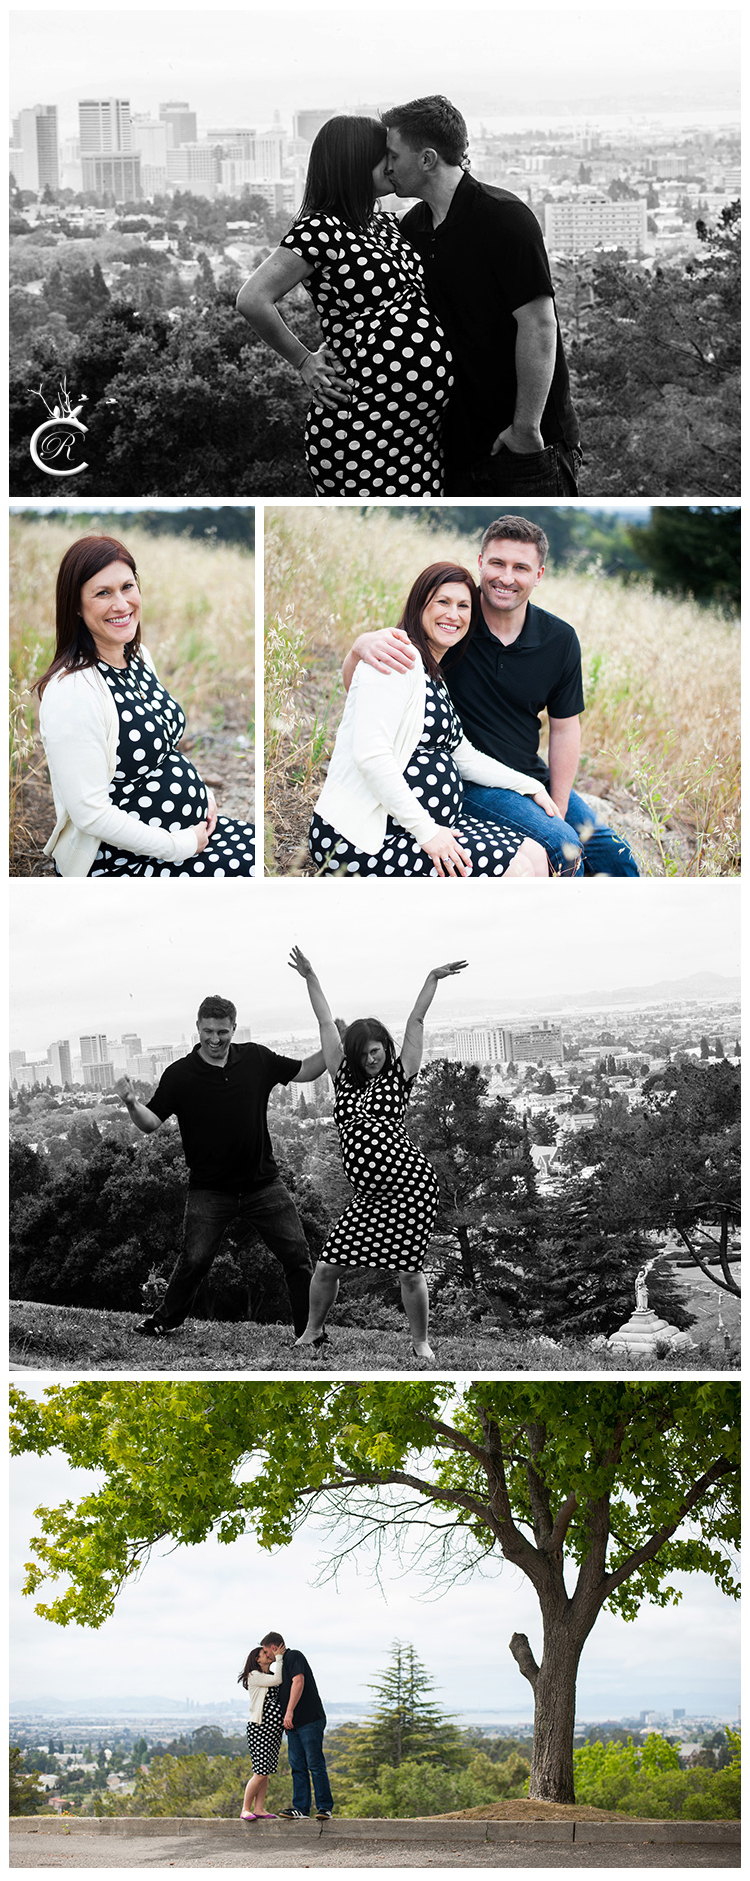 Maternity photography session in Oakland, Ca